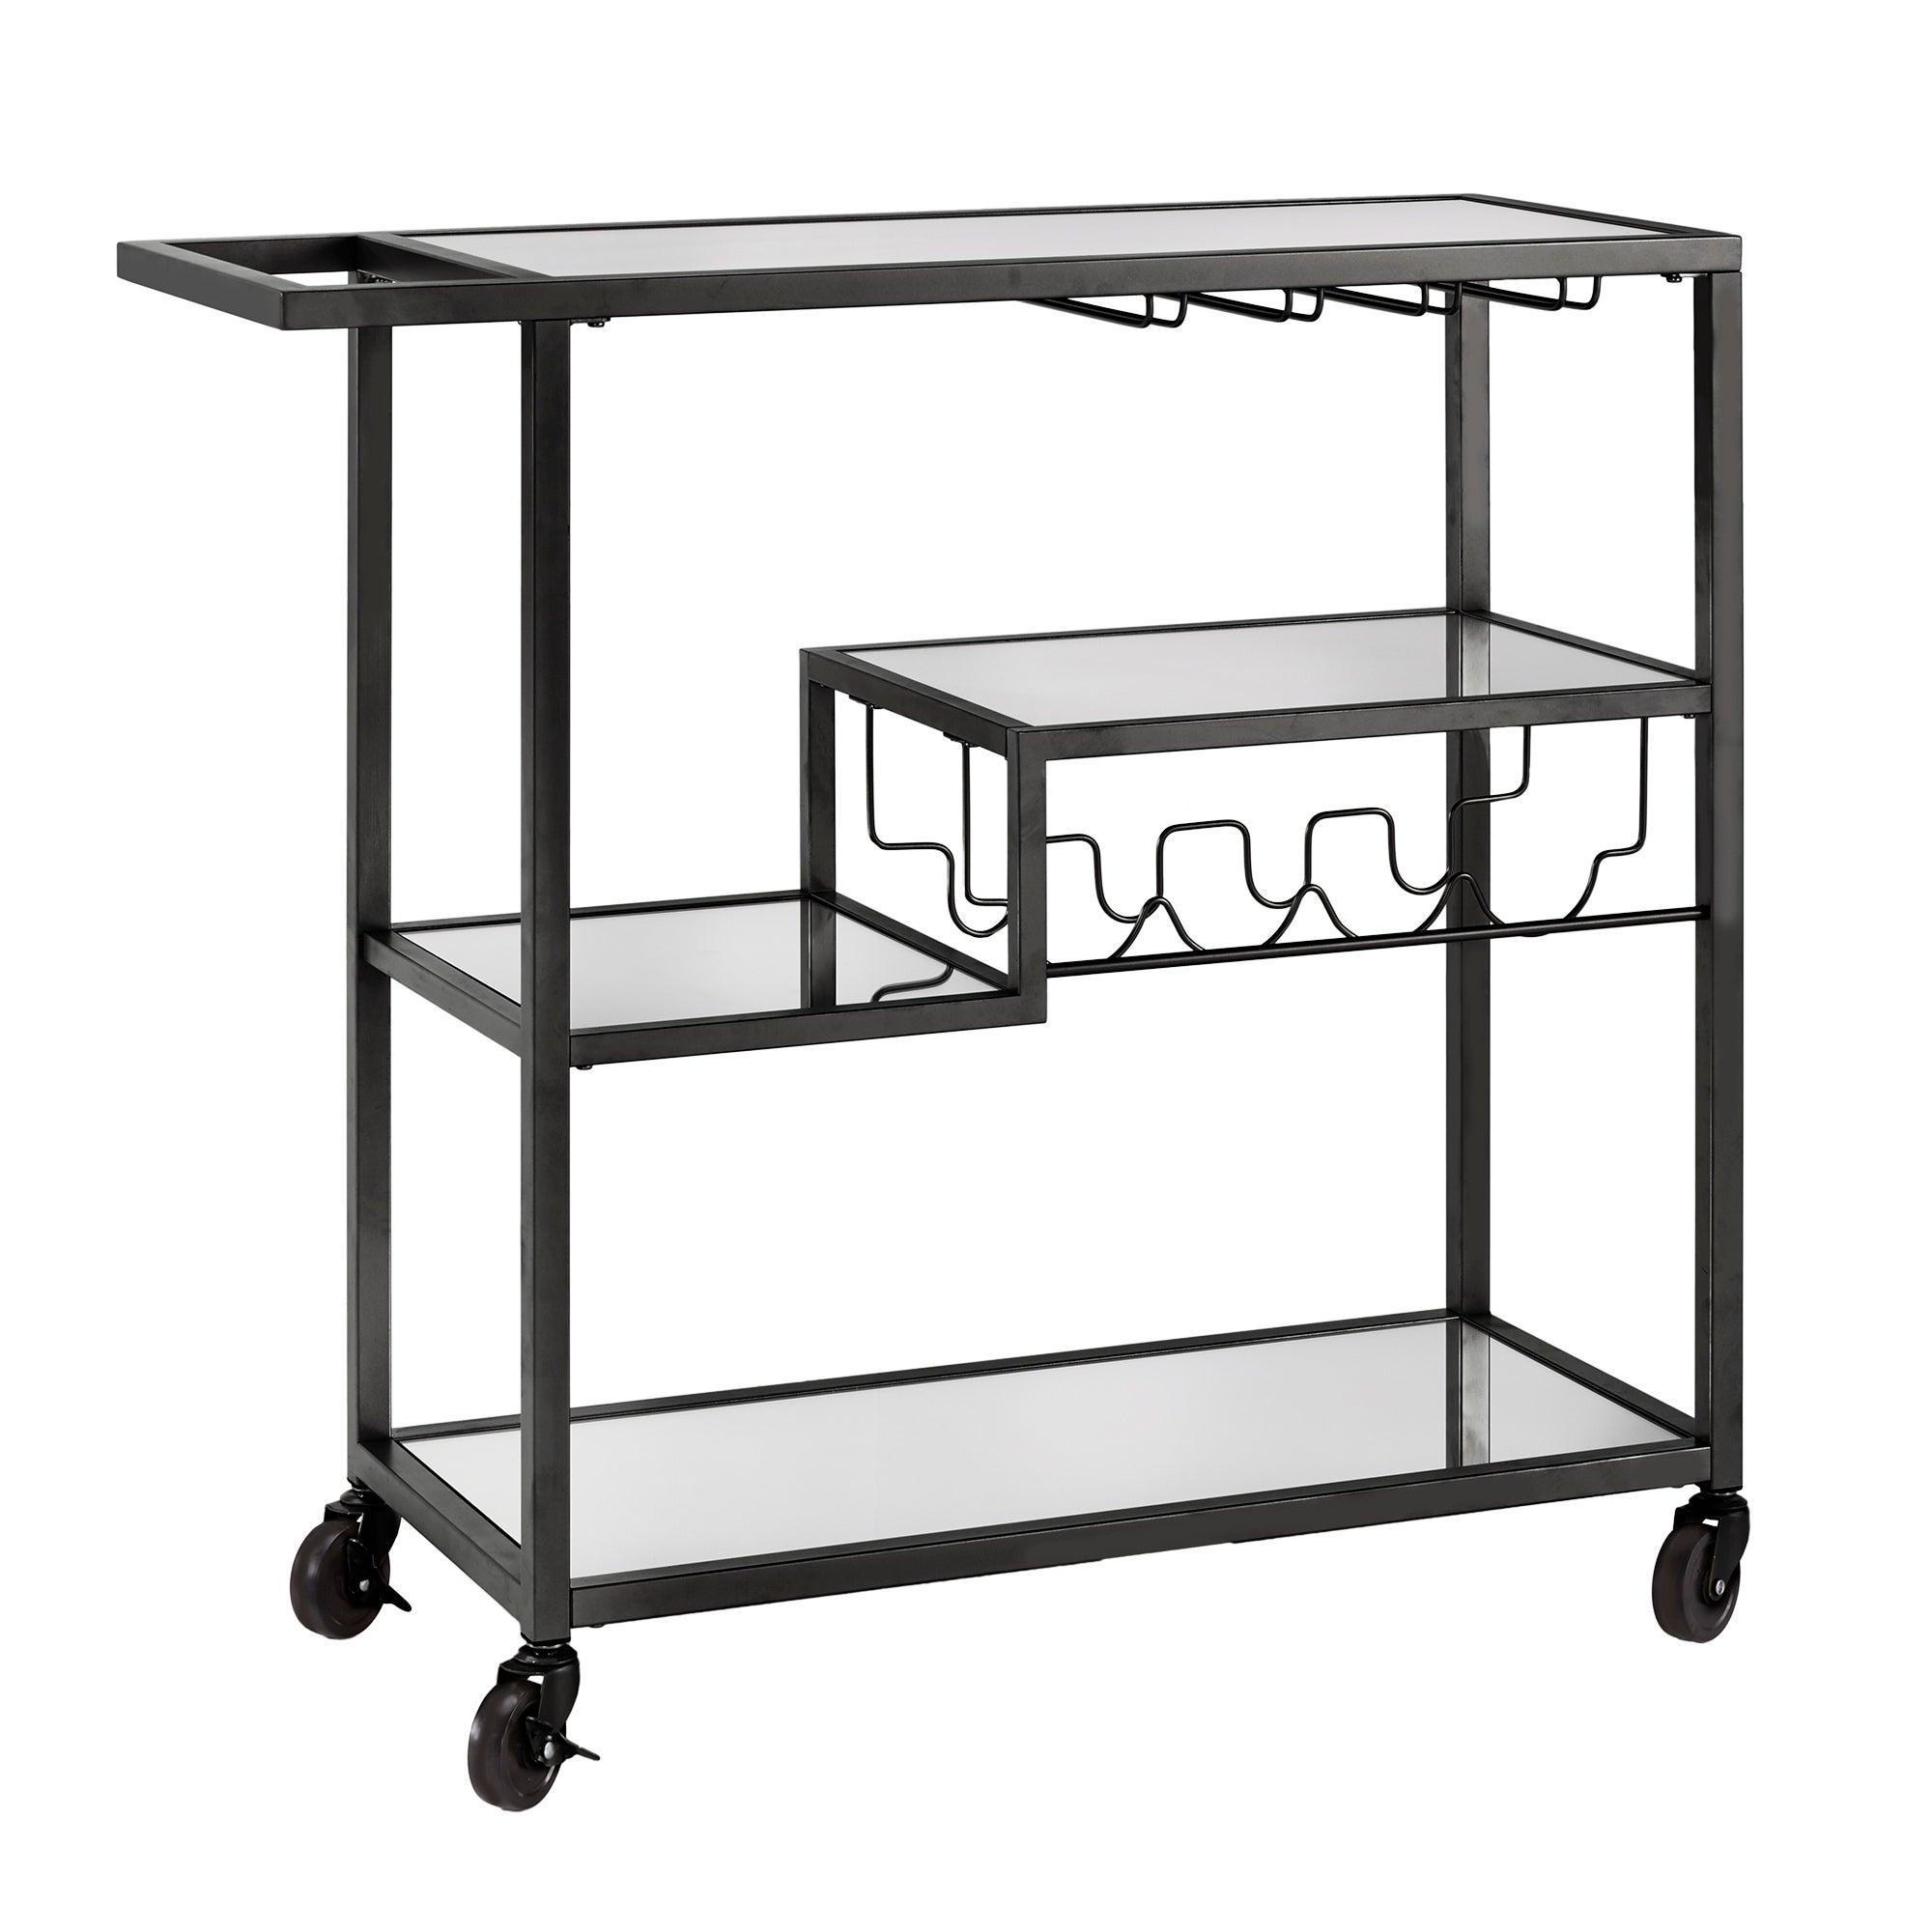 Metropolitan Mirrored Glass Top Metal Bar Cart By Inspire Q Bold On Sale Overstock 13057939